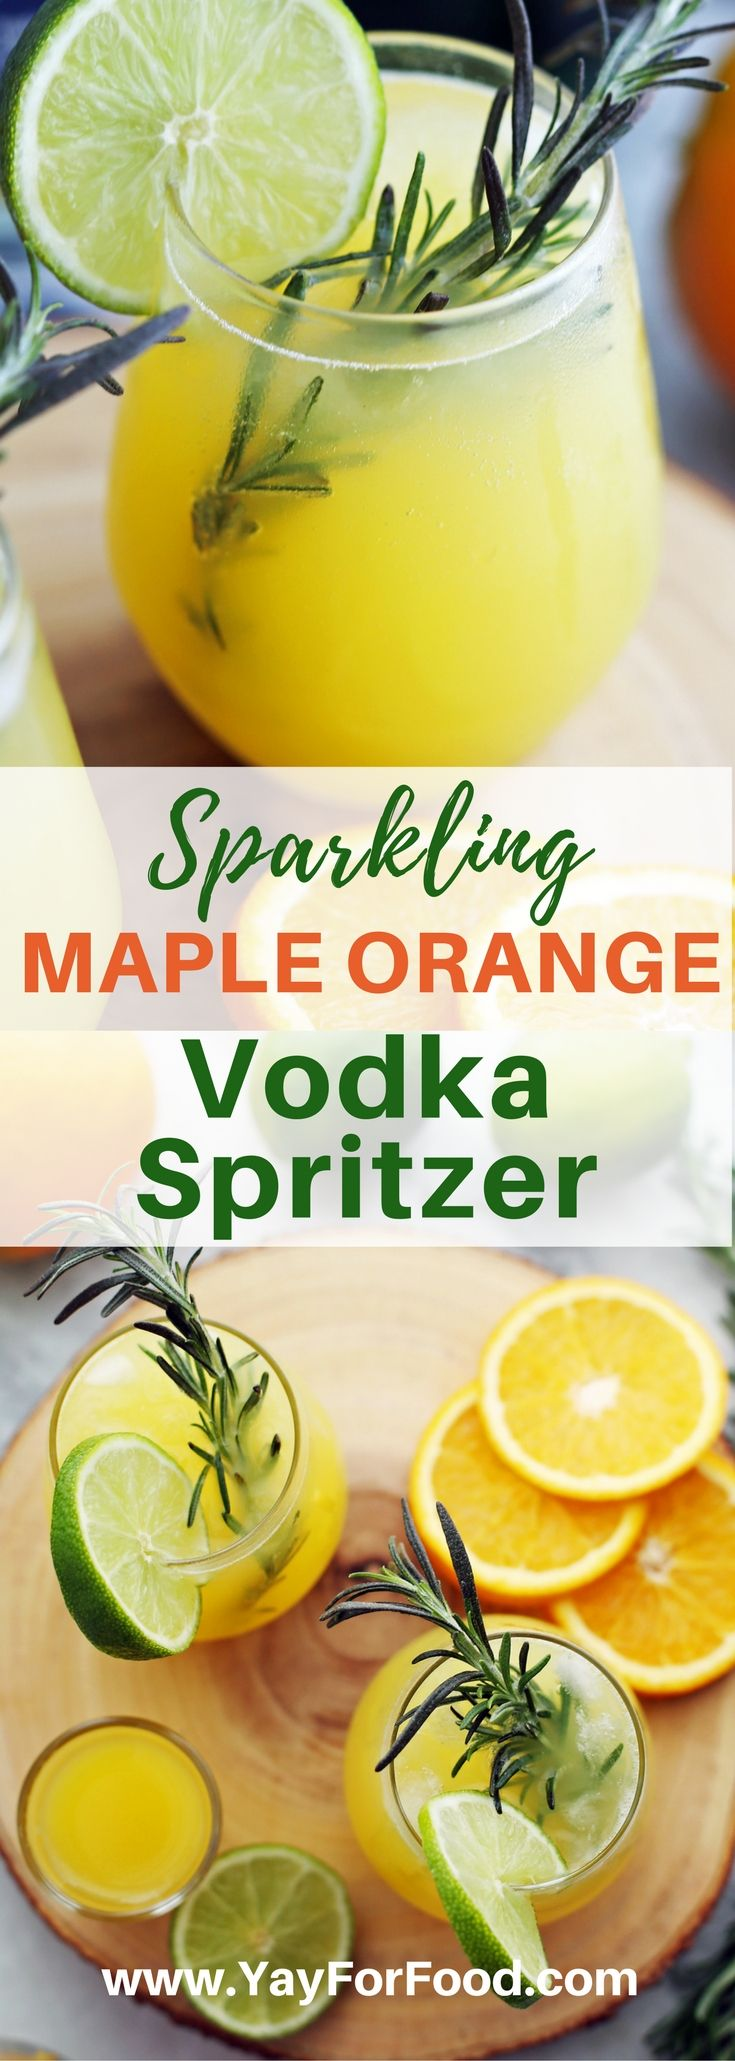 SPARKLING MAPLE ORANGE VODKA SPRITZERS - umm yes please!